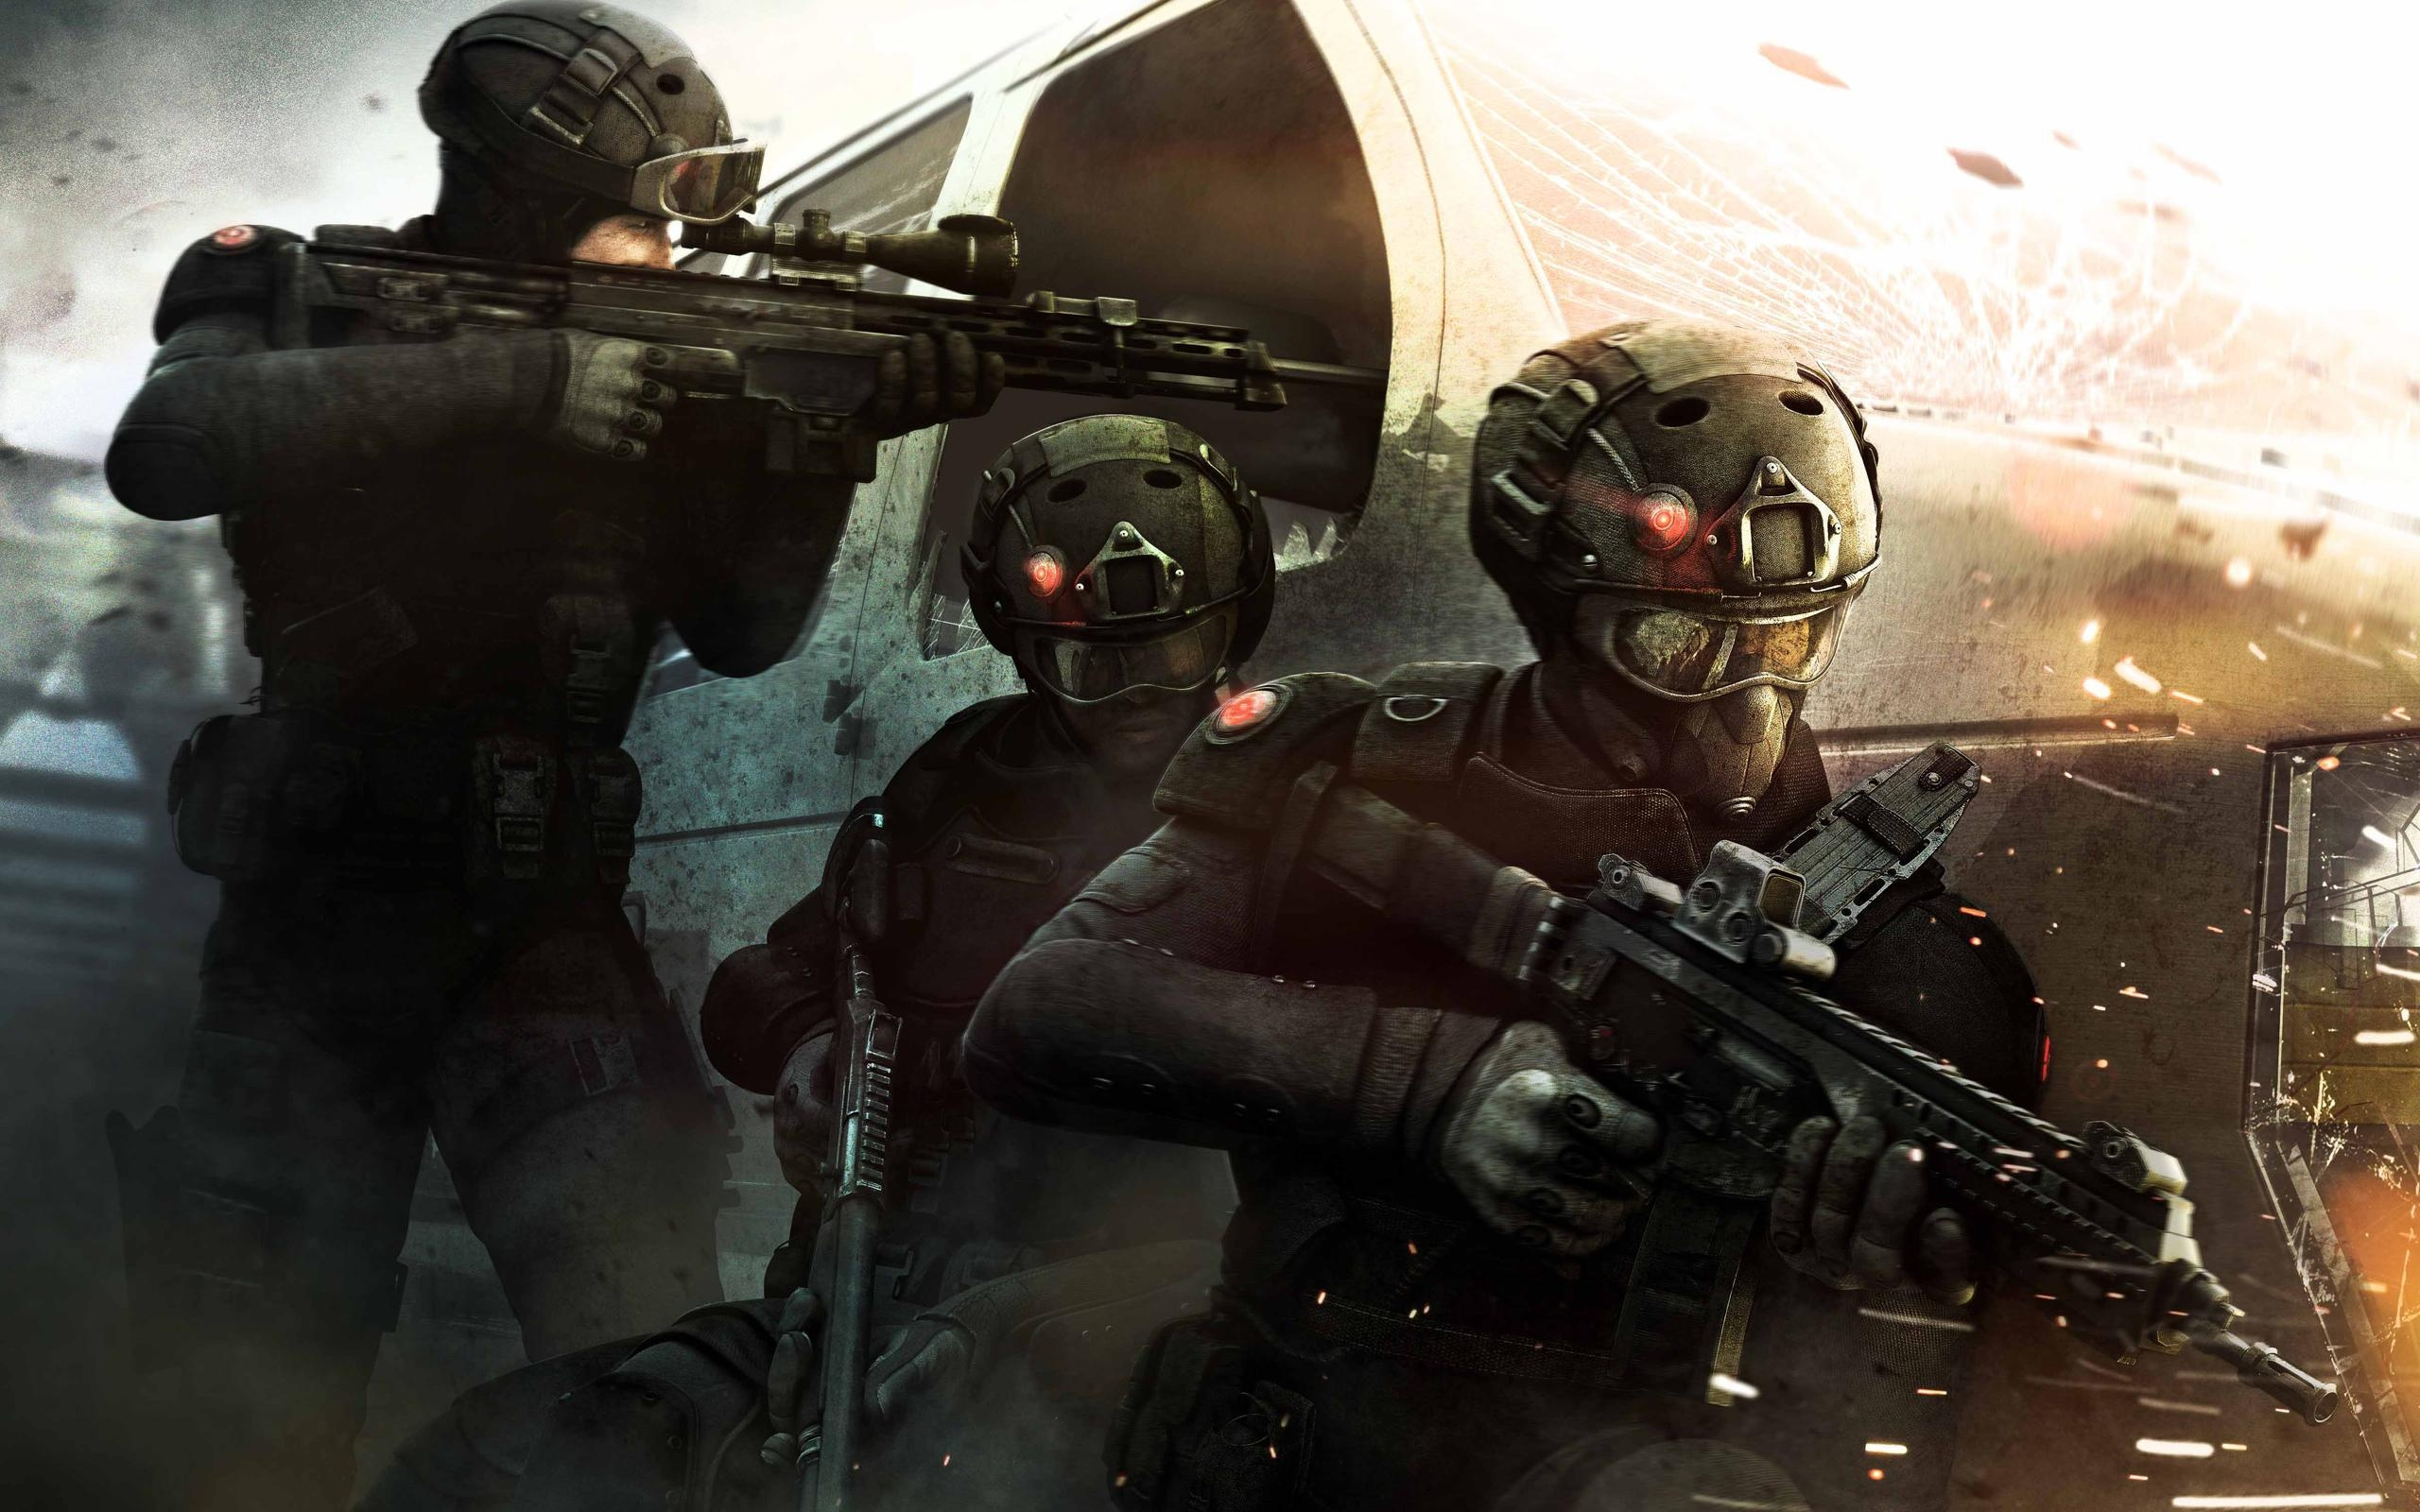 Tom Clancy's Rainbow Six Siege Patriots for 2560 x 1600 widescreen resolution